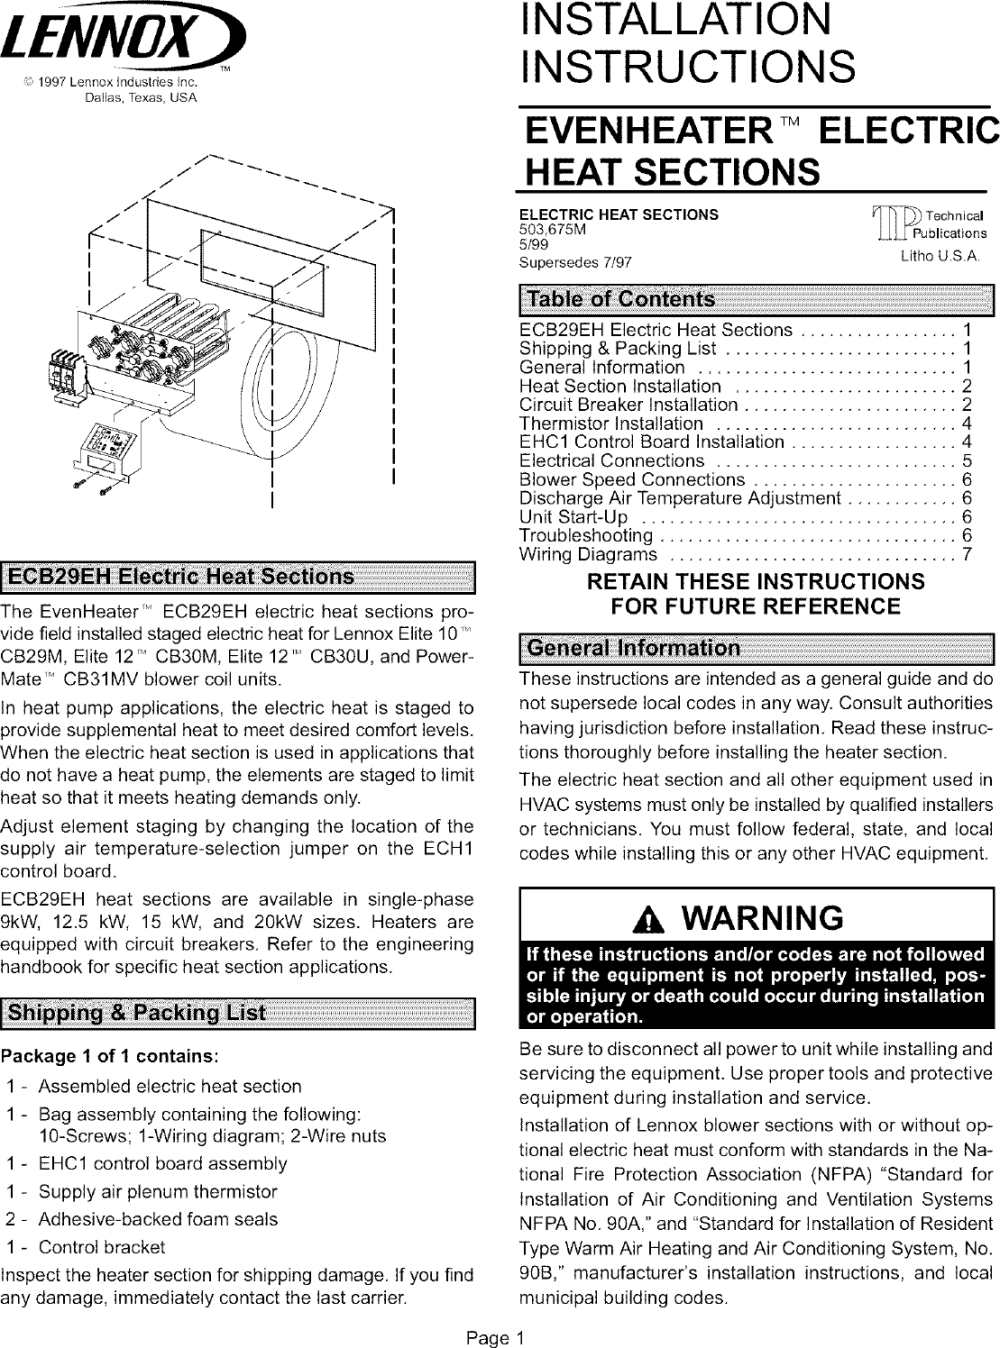 medium resolution of page 1 of 12 lennox air handler auxiliary heater kit manual l0805584